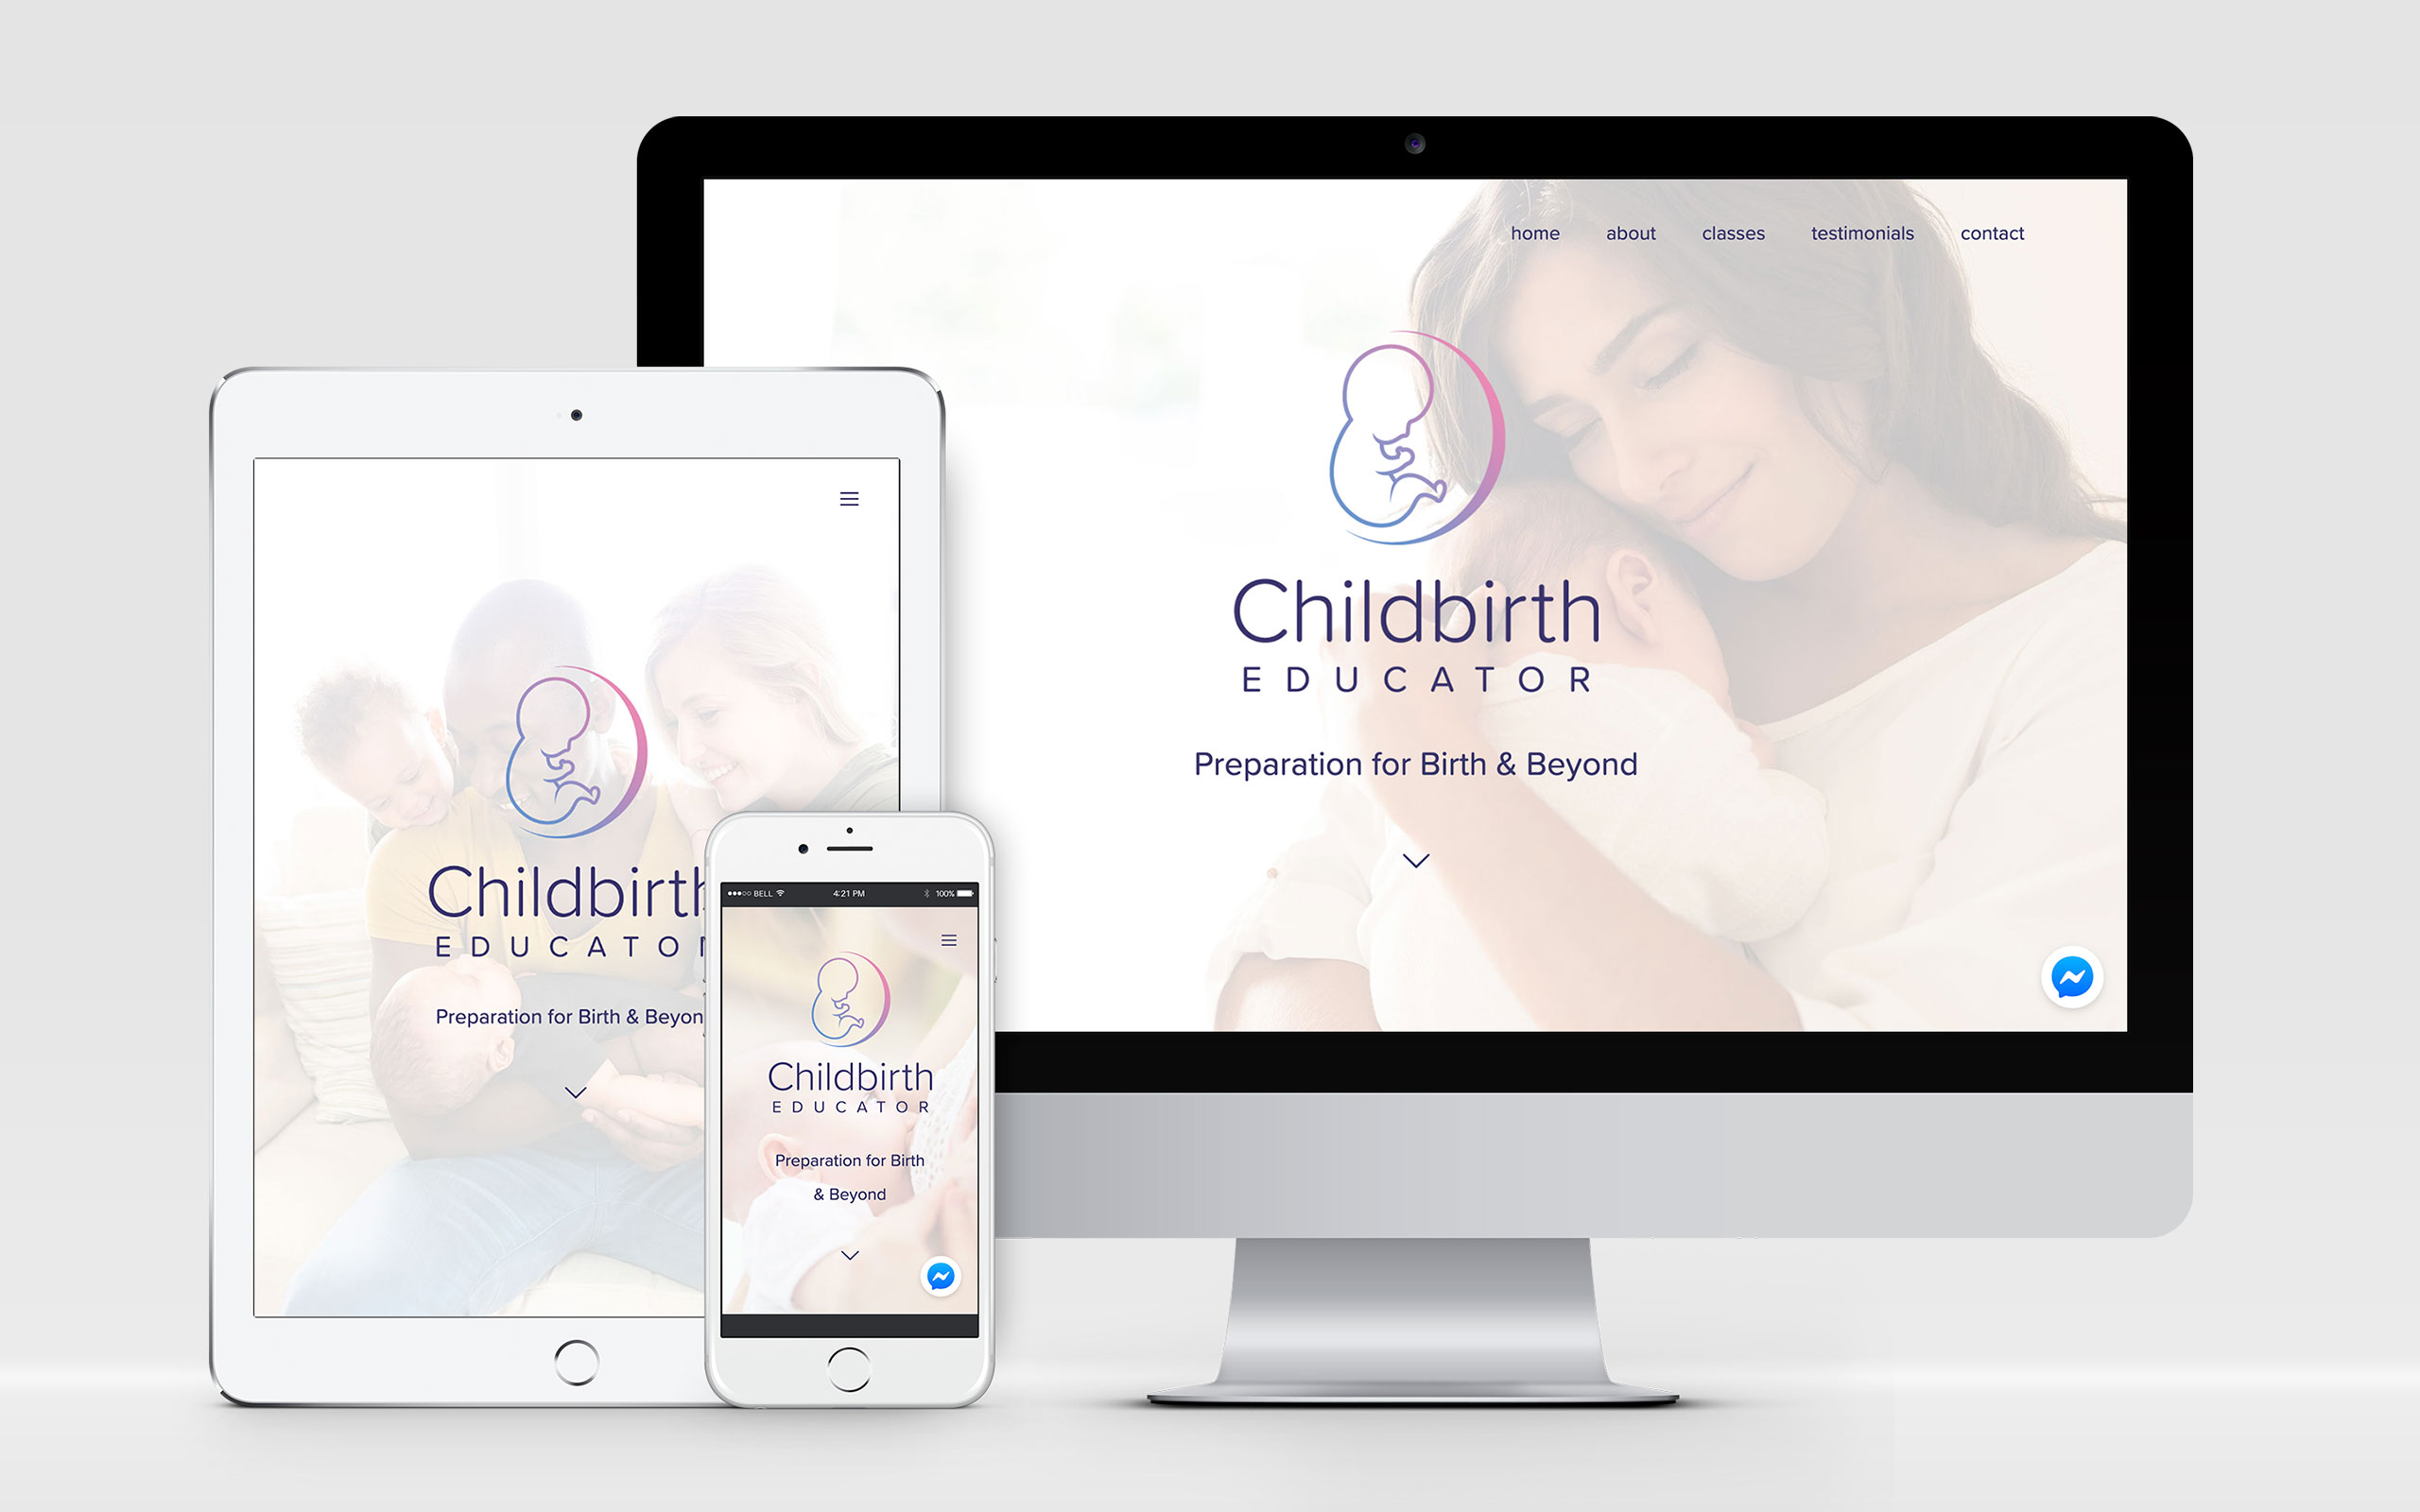 AW Design - website design & graphic design for Childbirth Educator